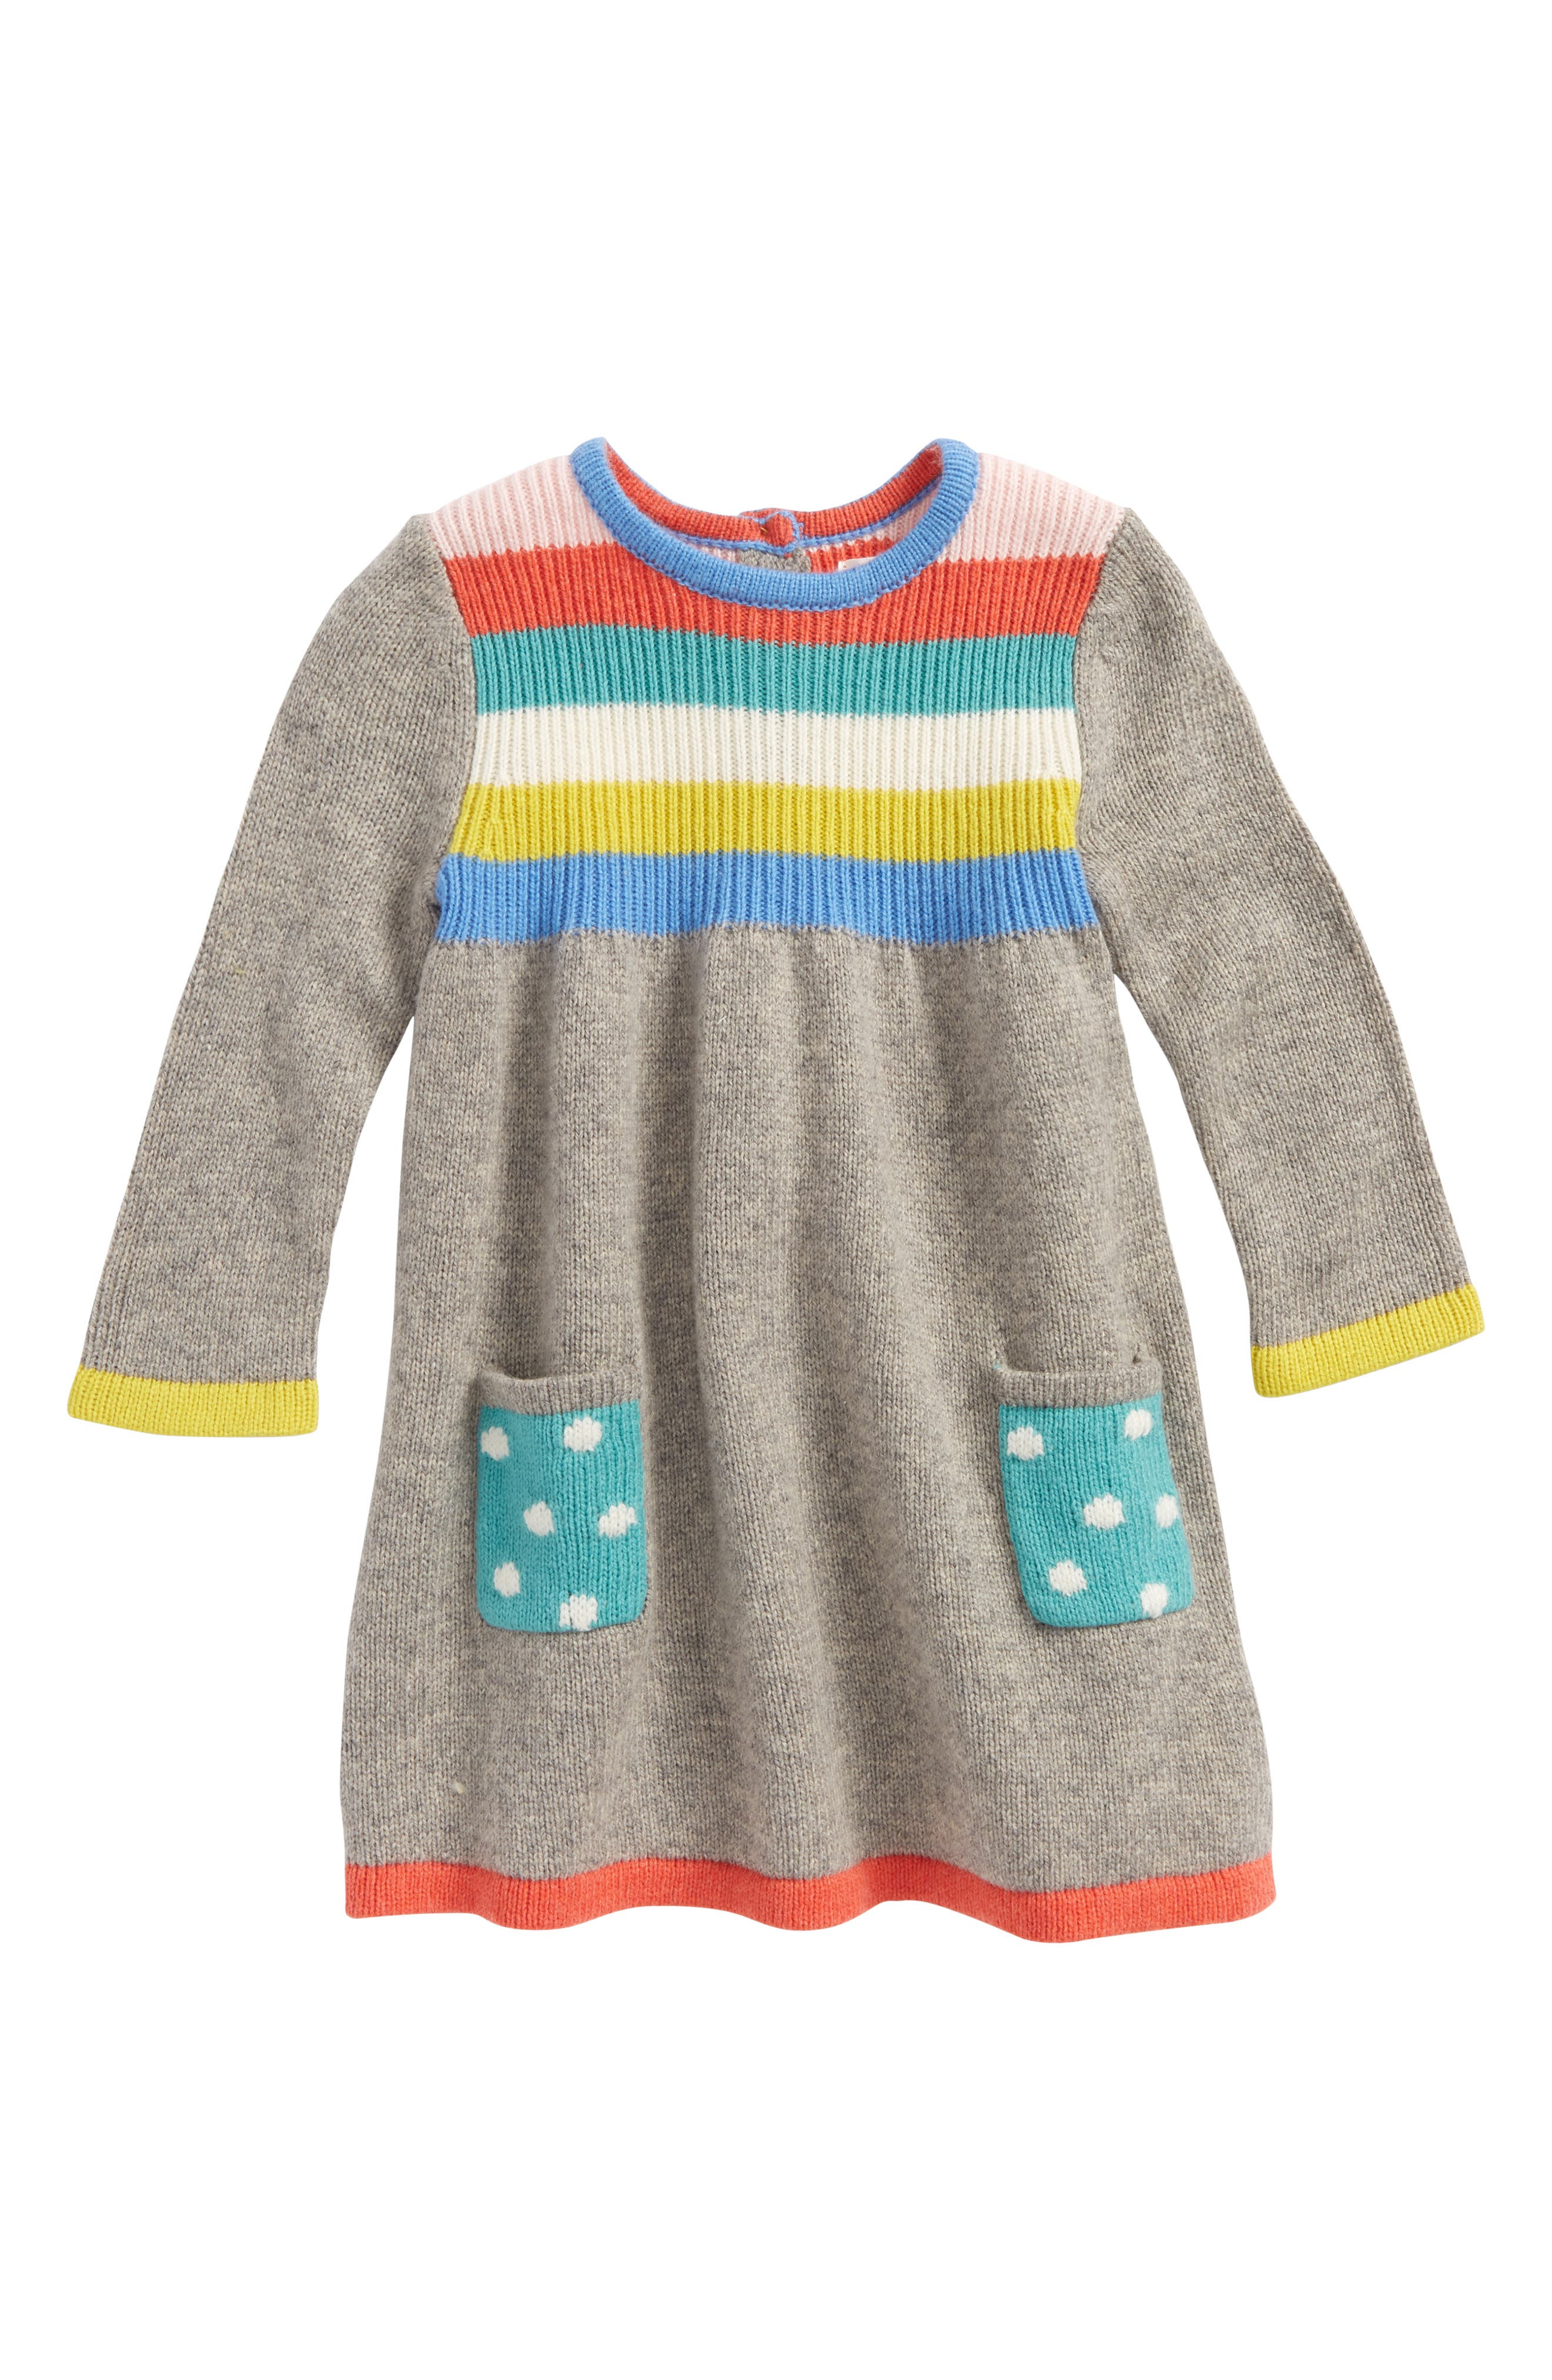 Mini Boden Rainbow Knit Sweater Dress (Baby Girls & Toddler Girls)